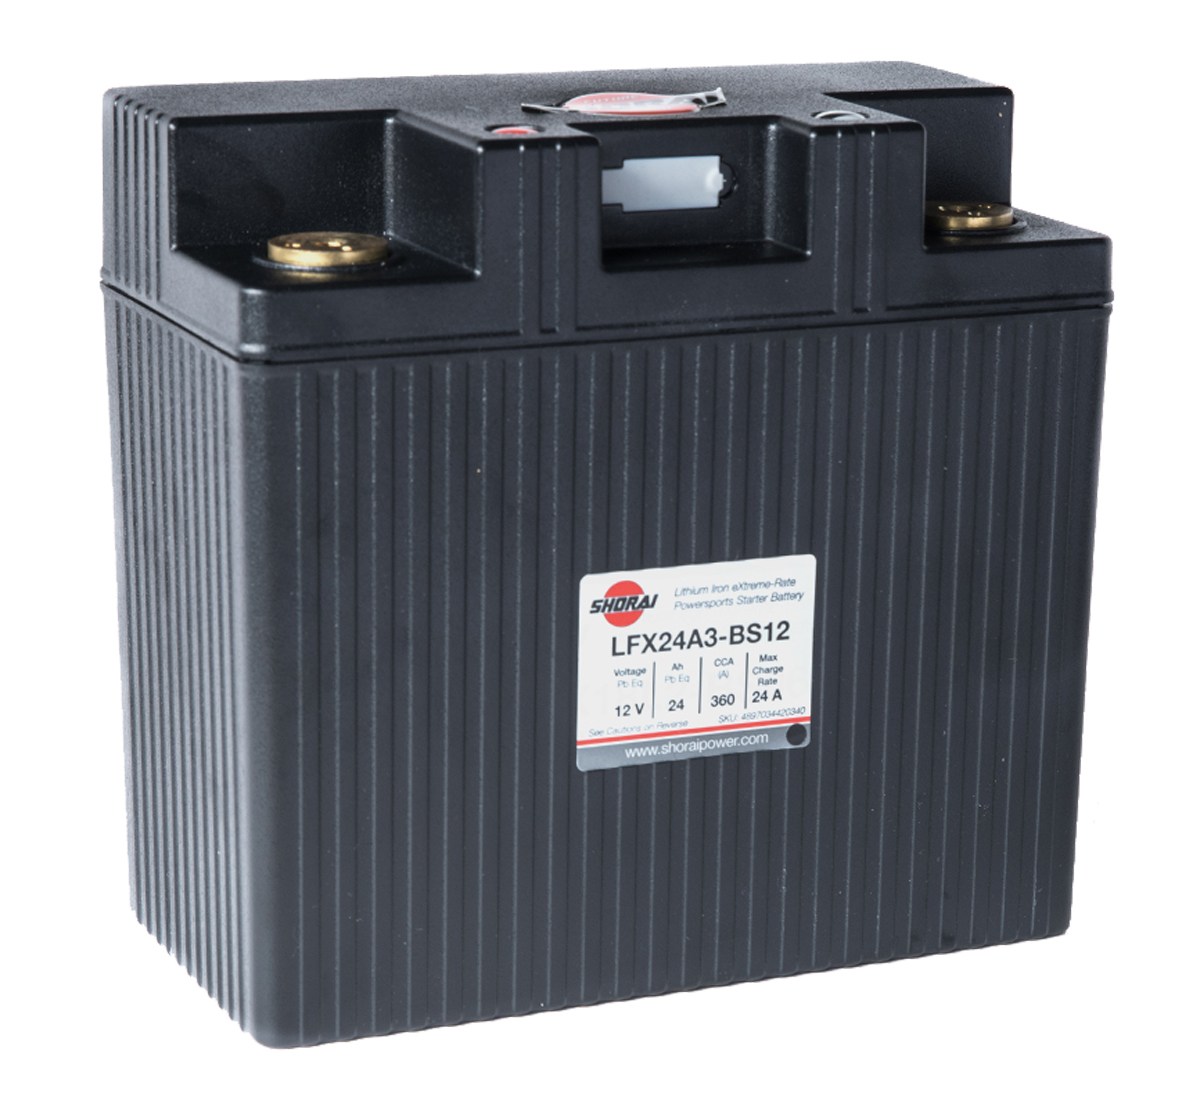 Shorai LFX24A3-BS12 12v 24AH Lithium Battery